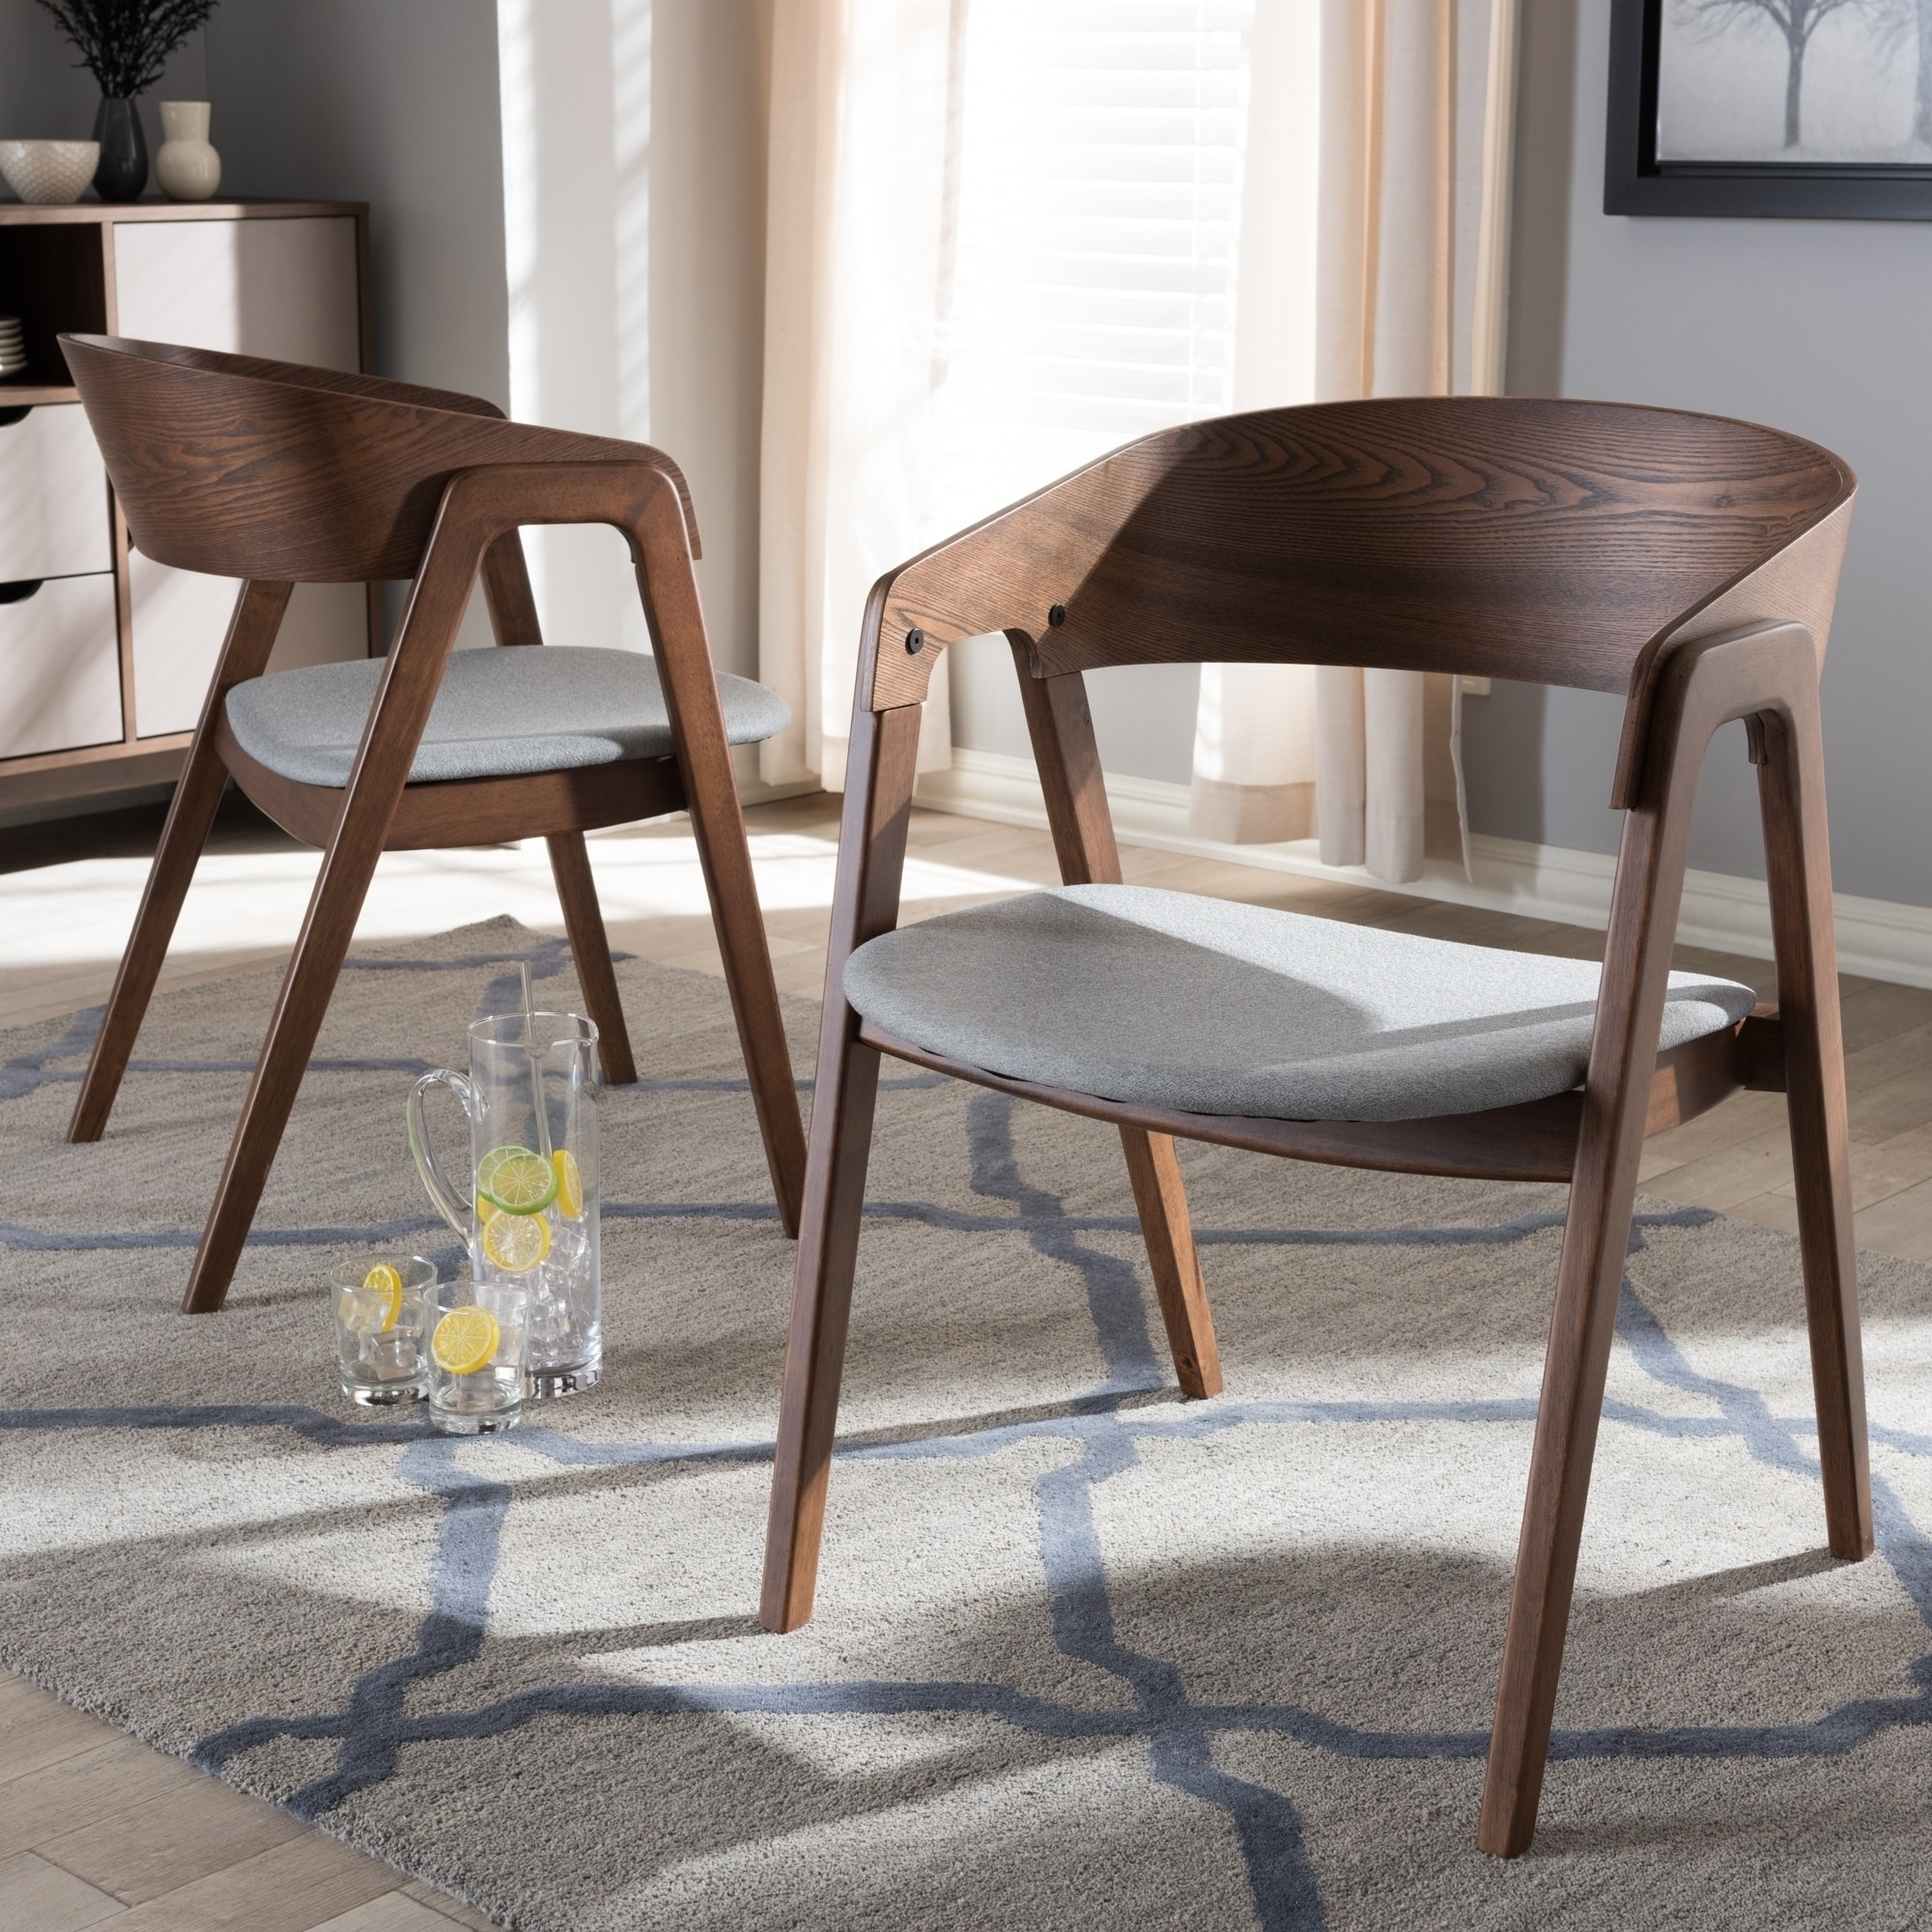 Weston Home Farmhouse Dining Chair With Cross Back (Set Of With Regard To 2018 Carly 3 Piece Triangle Dining Sets (View 24 of 25)